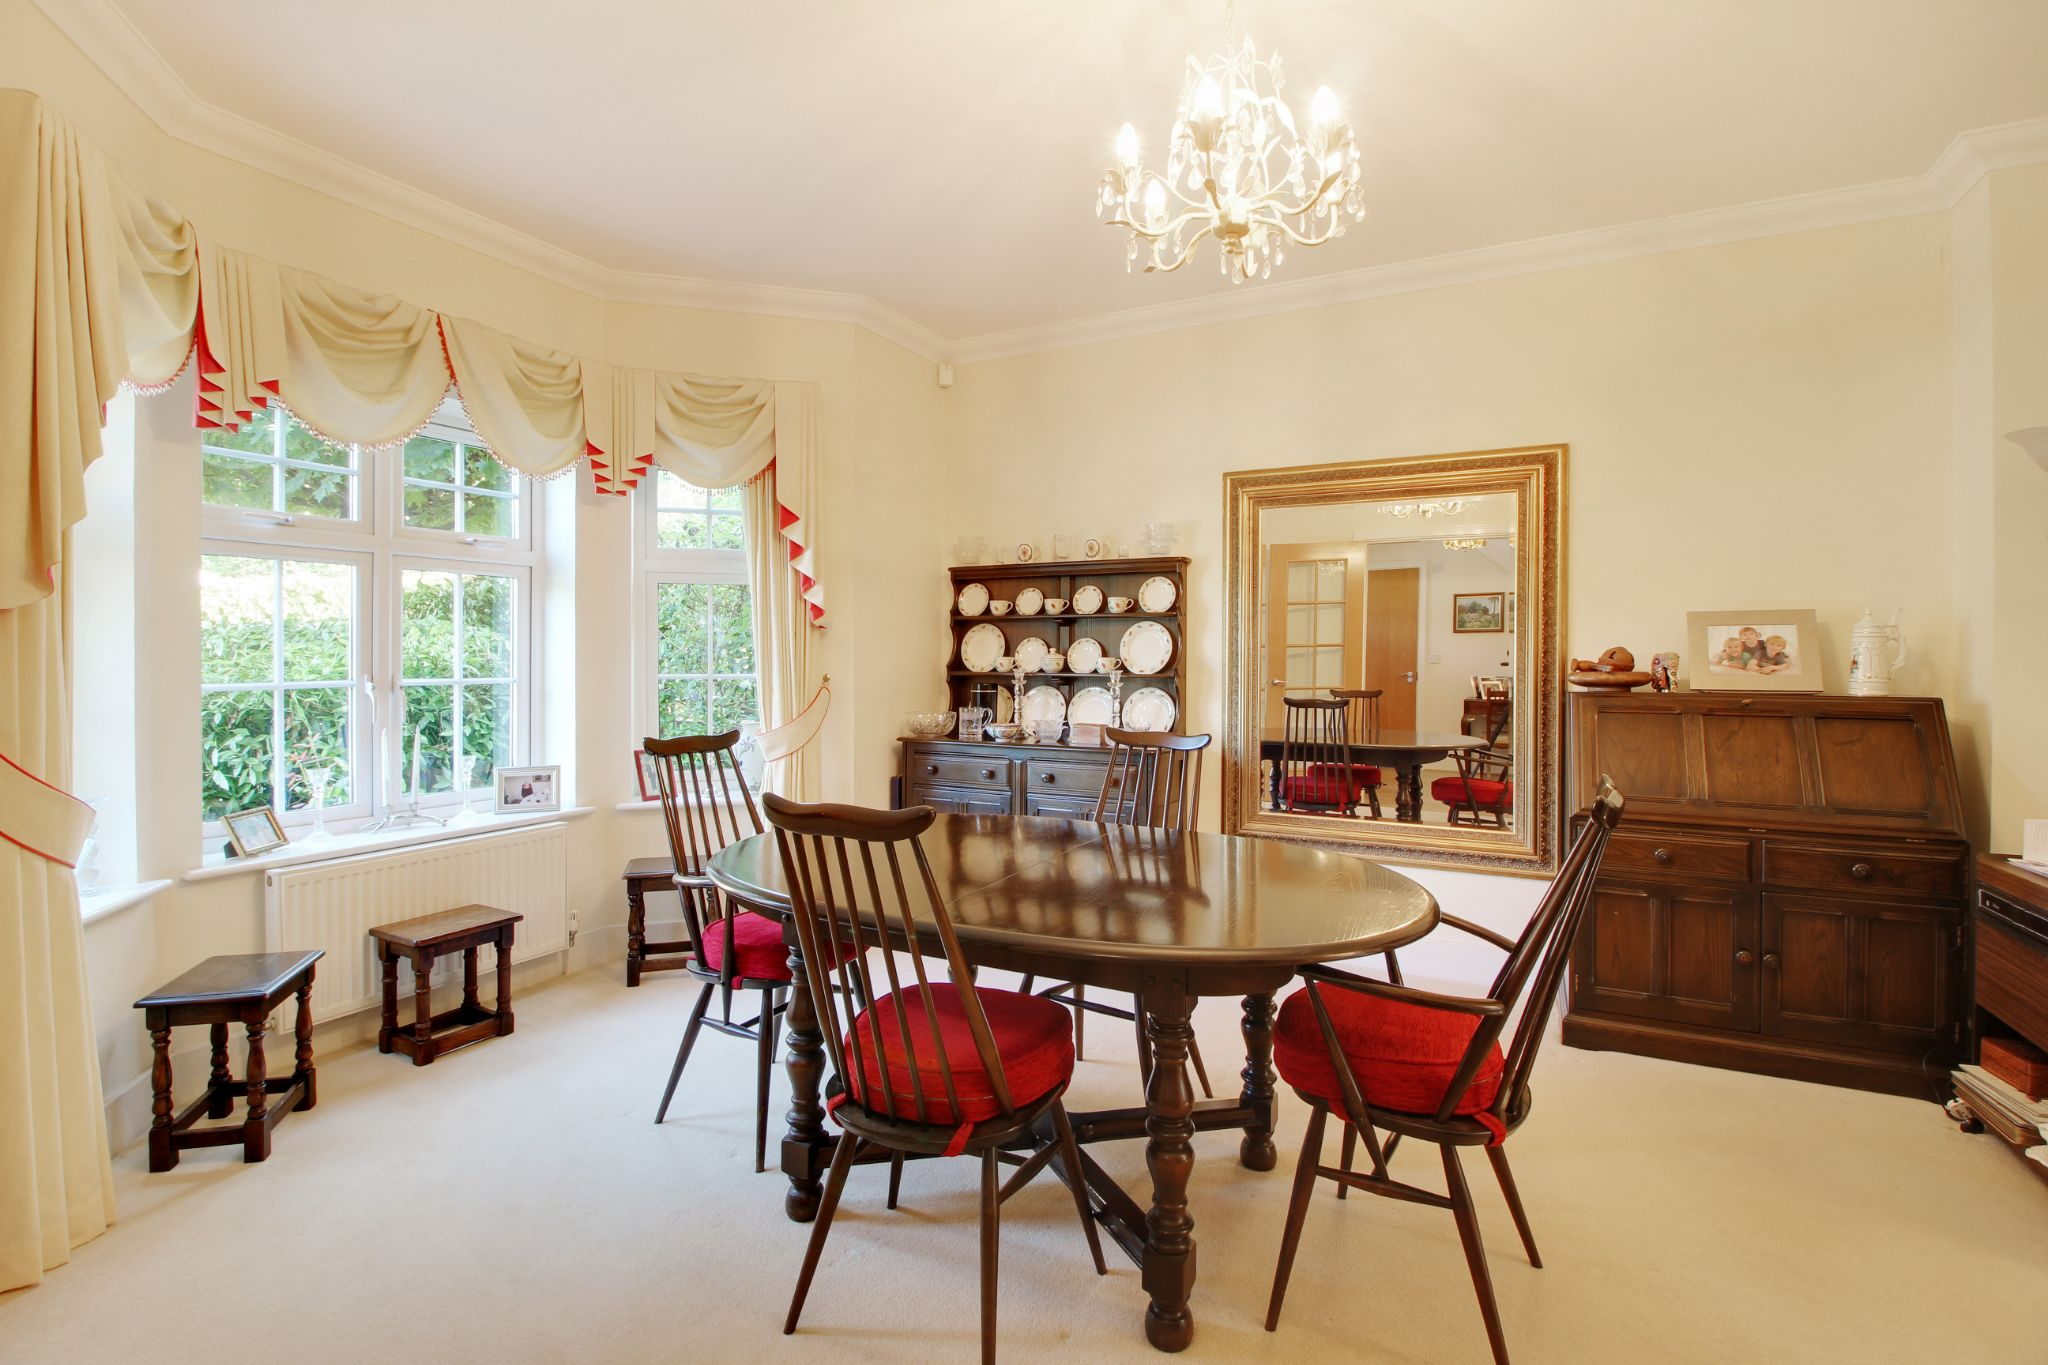 5 bedroom detached house Sold in Sevenoaks - Photograph 4